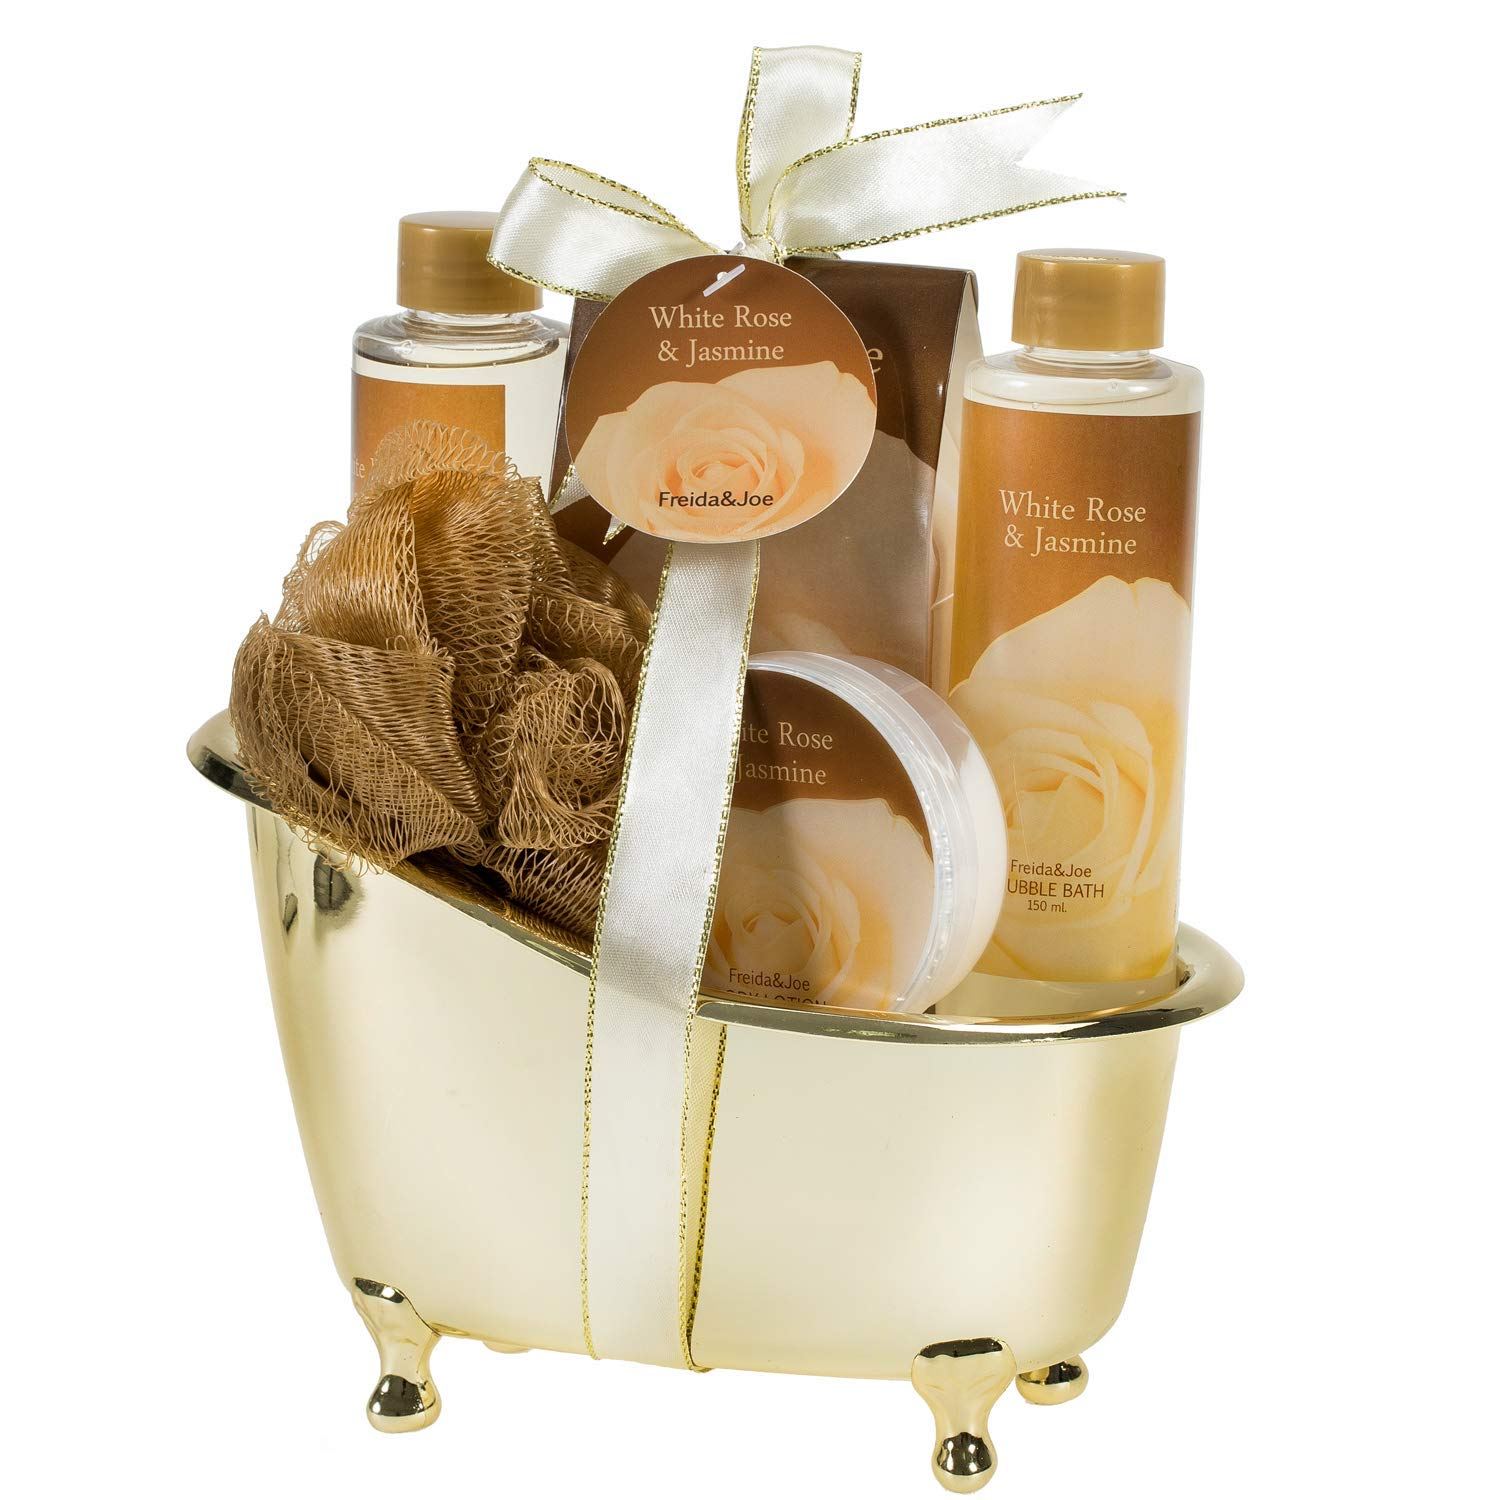 Body and Bath Spa Gift Set in a Luxurious and Elegant Gold Tub Basket for Women by Freida Joe in White Rose Jasmine Fragrance, Includes Hydrating and Refreshing Shower Gel, Bubble Bath, and Bath Salts